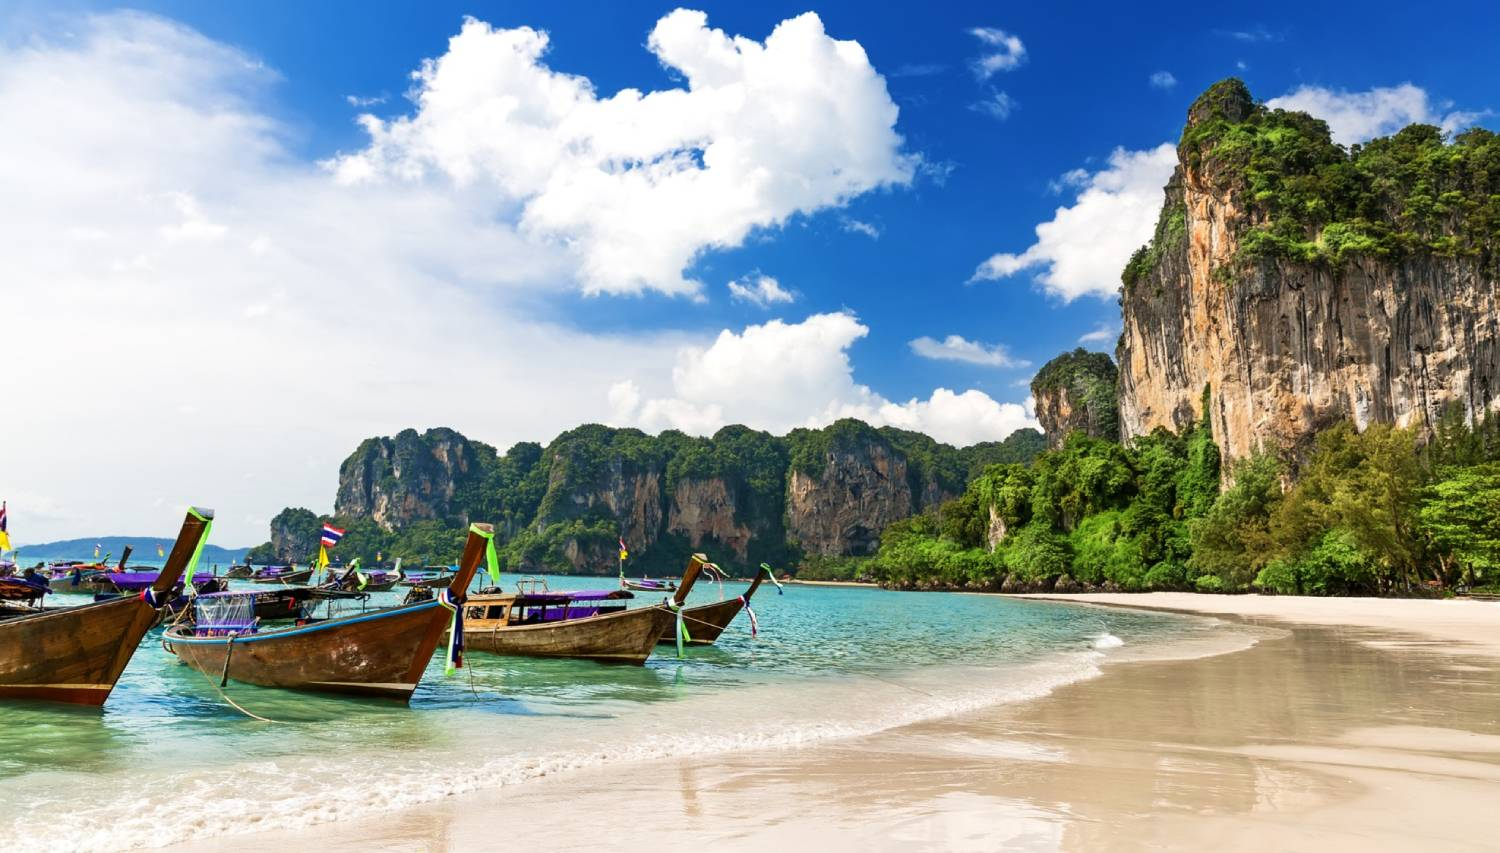 Railay Beach - The Best Places To Visit In Thailand